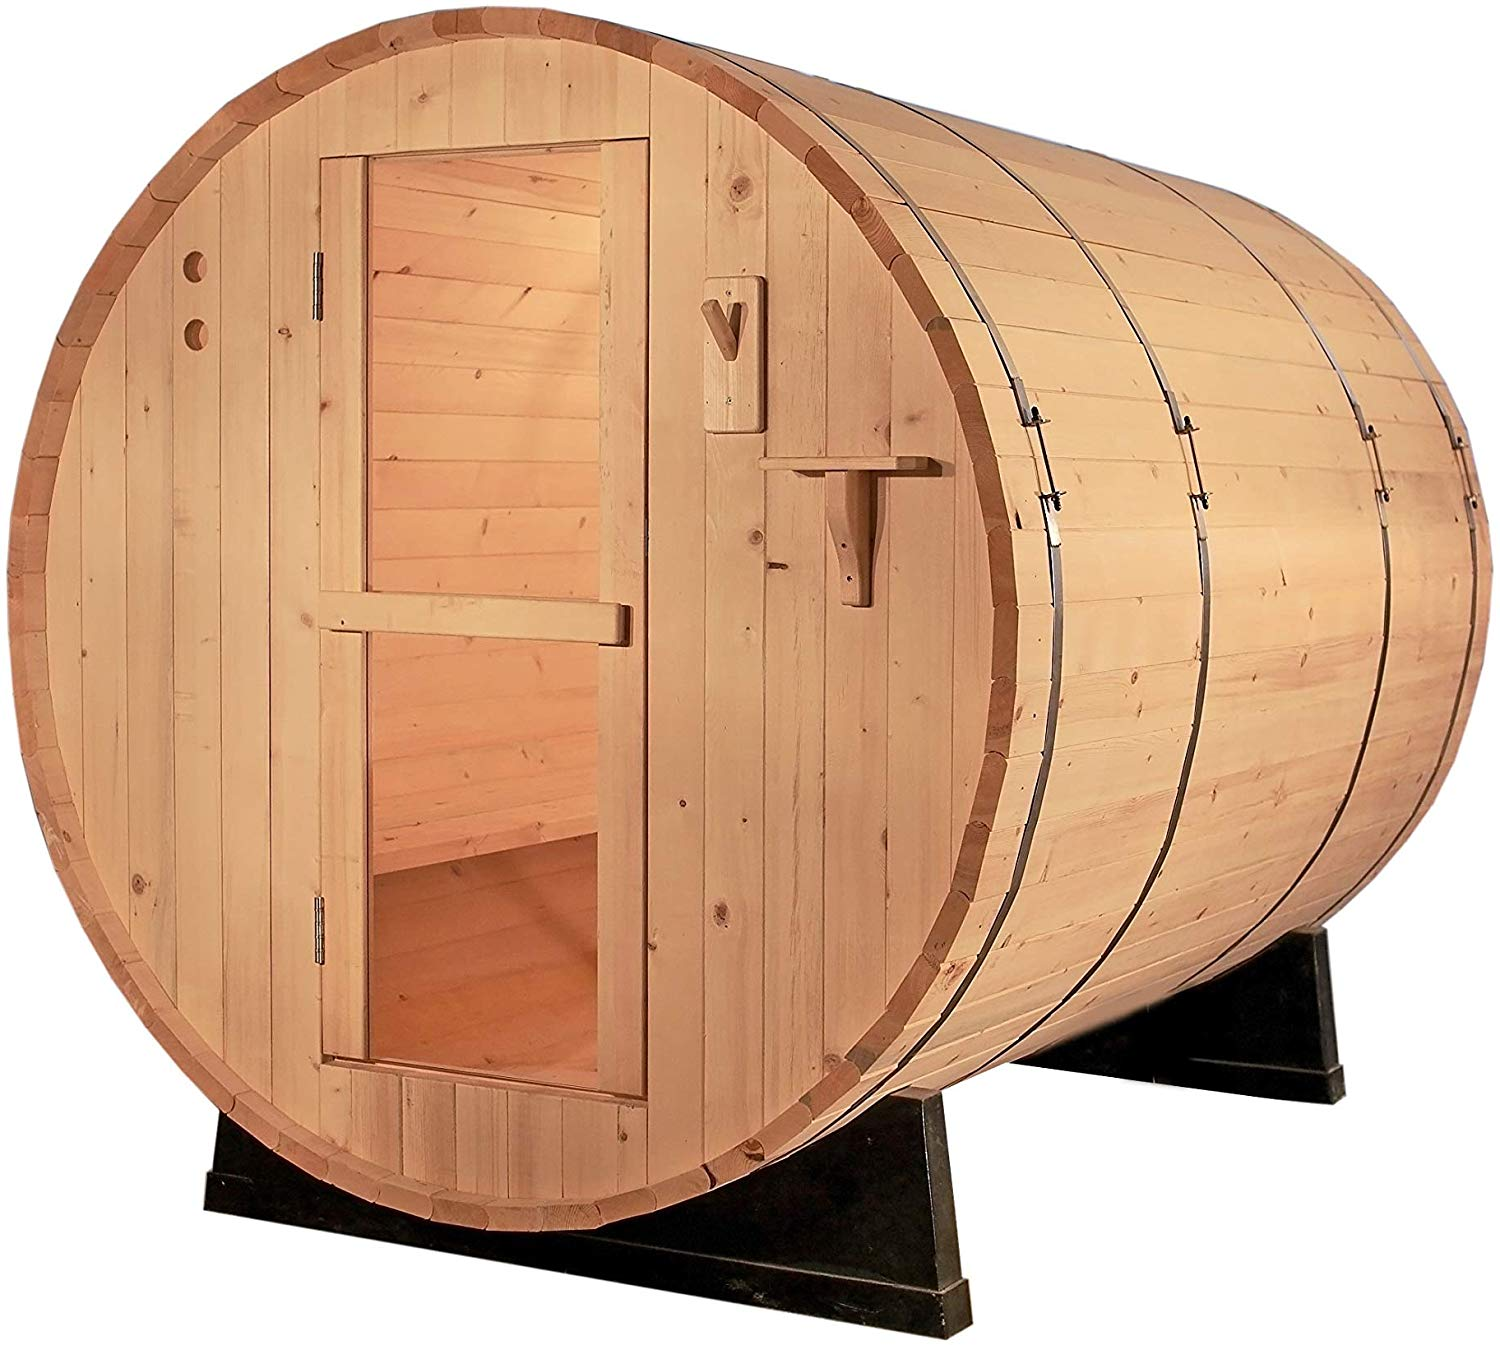 Decorate With Daria 4-Person Outdoor Sauna